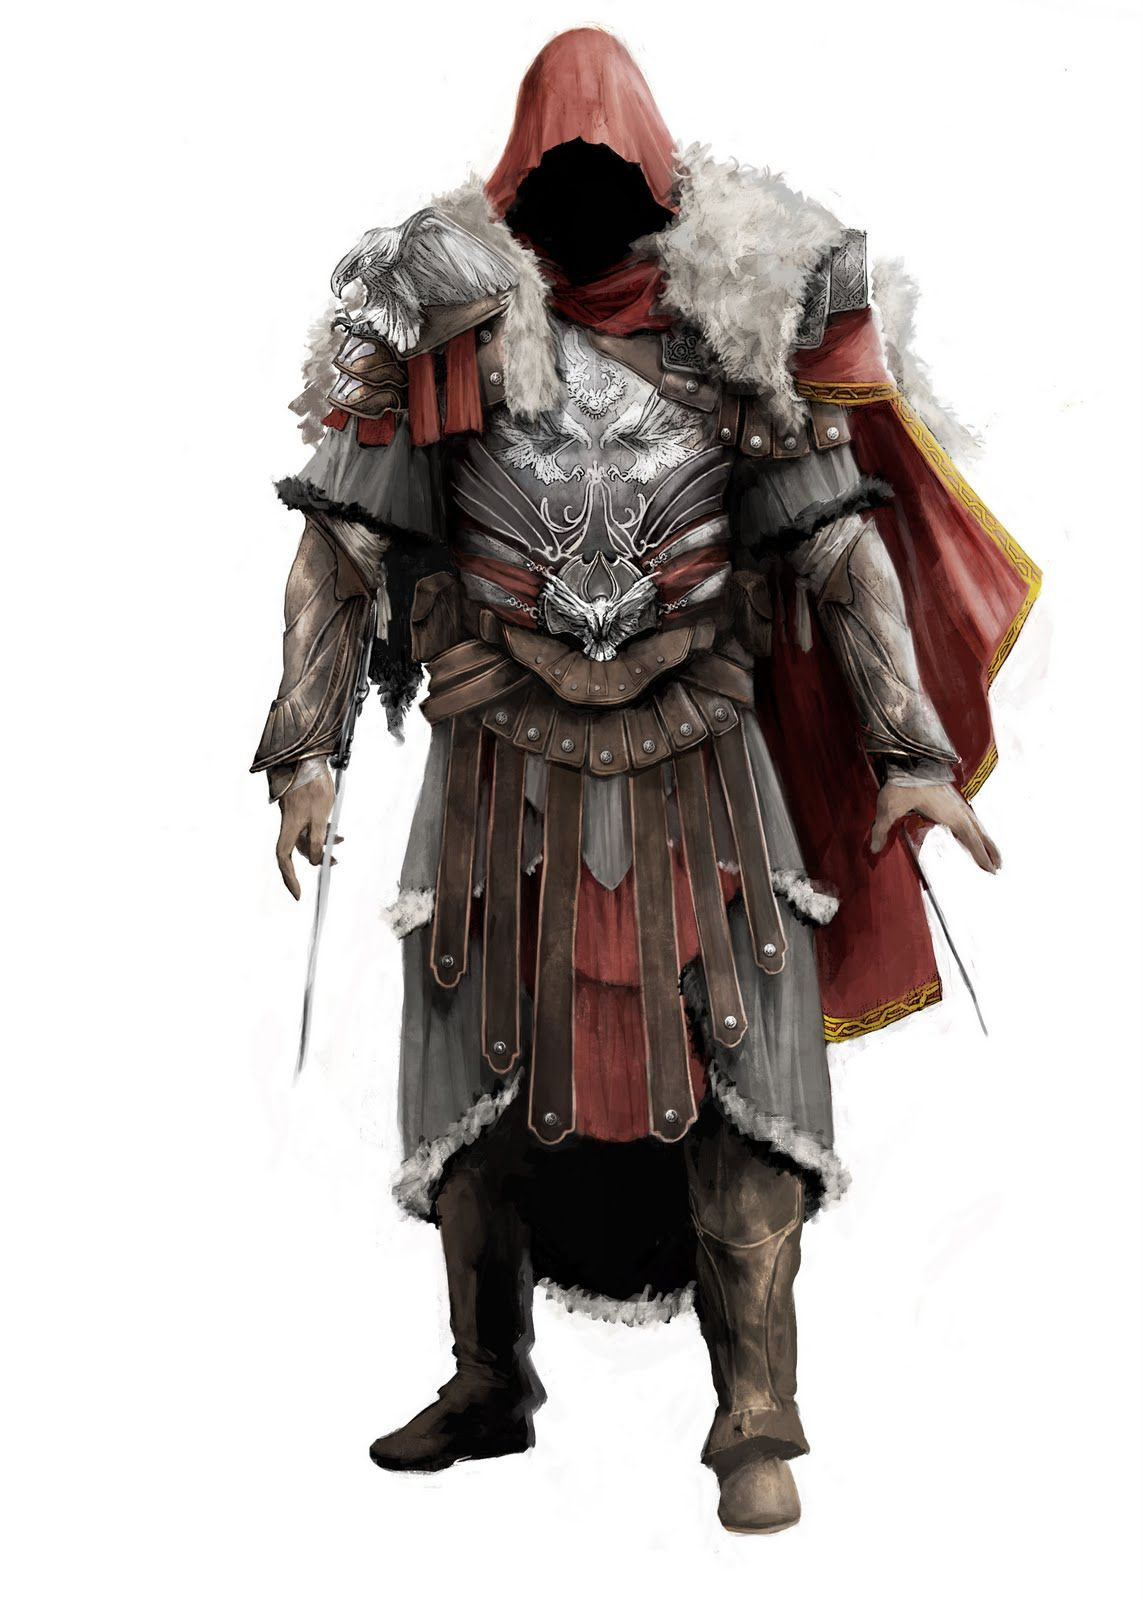 Armor Of Brutus Assassins Creed Art Assassin S Creed